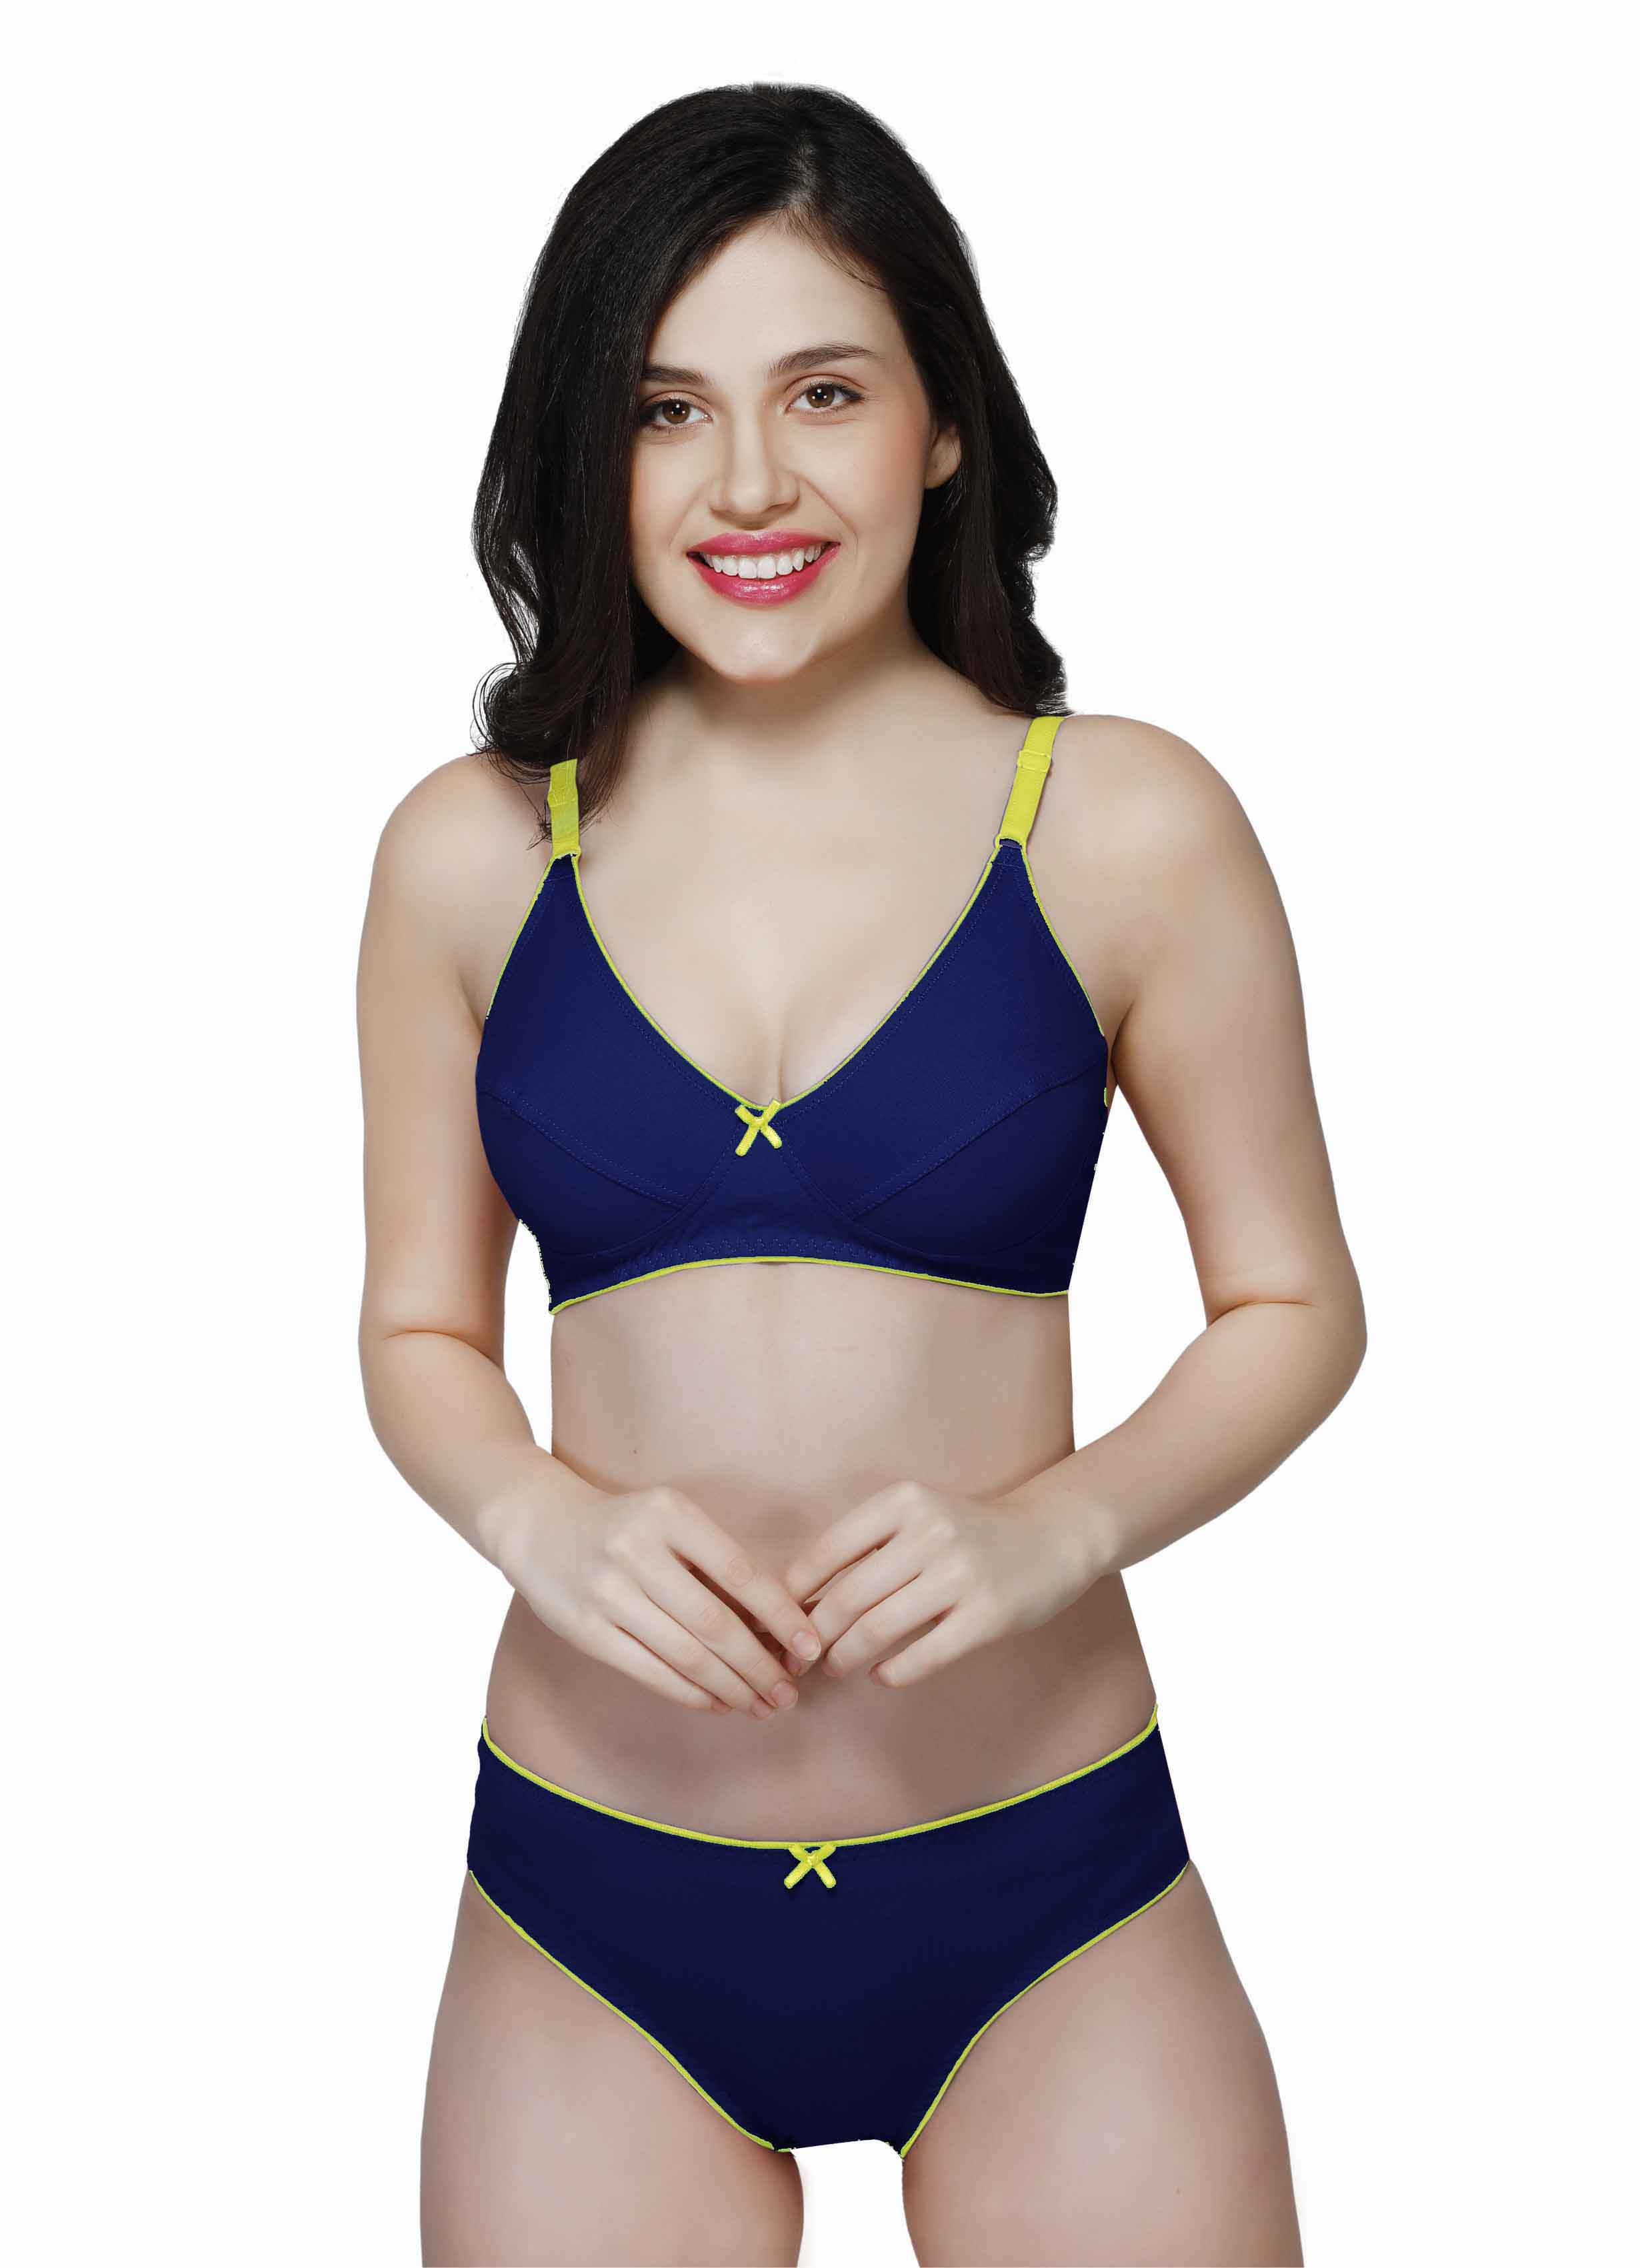 Wirefree Everyday Bra with Co-ordinated Panty-KS009-Navy Blue